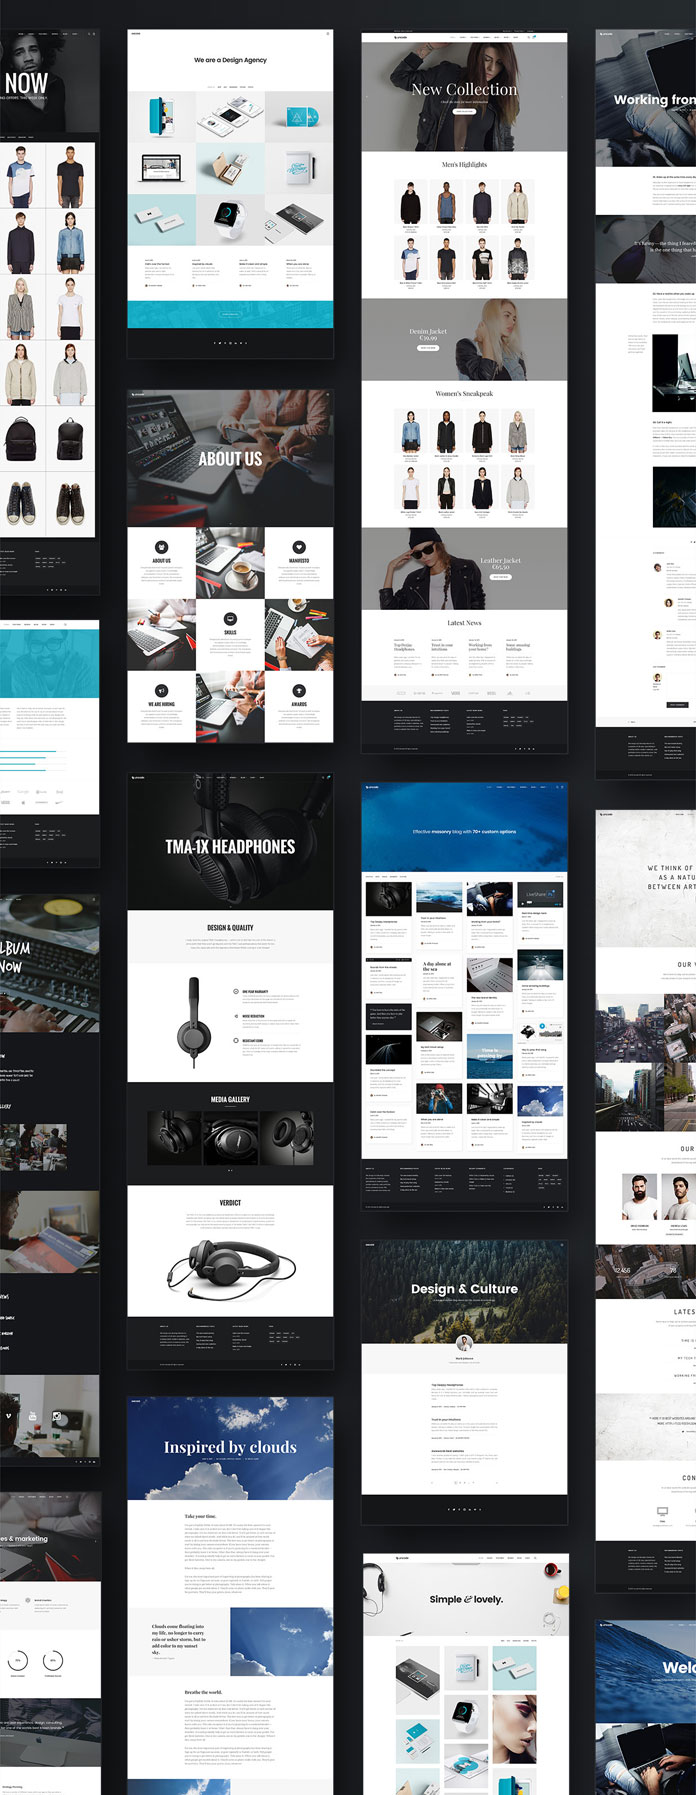 One WordPress theme that lets you create countless layouts.